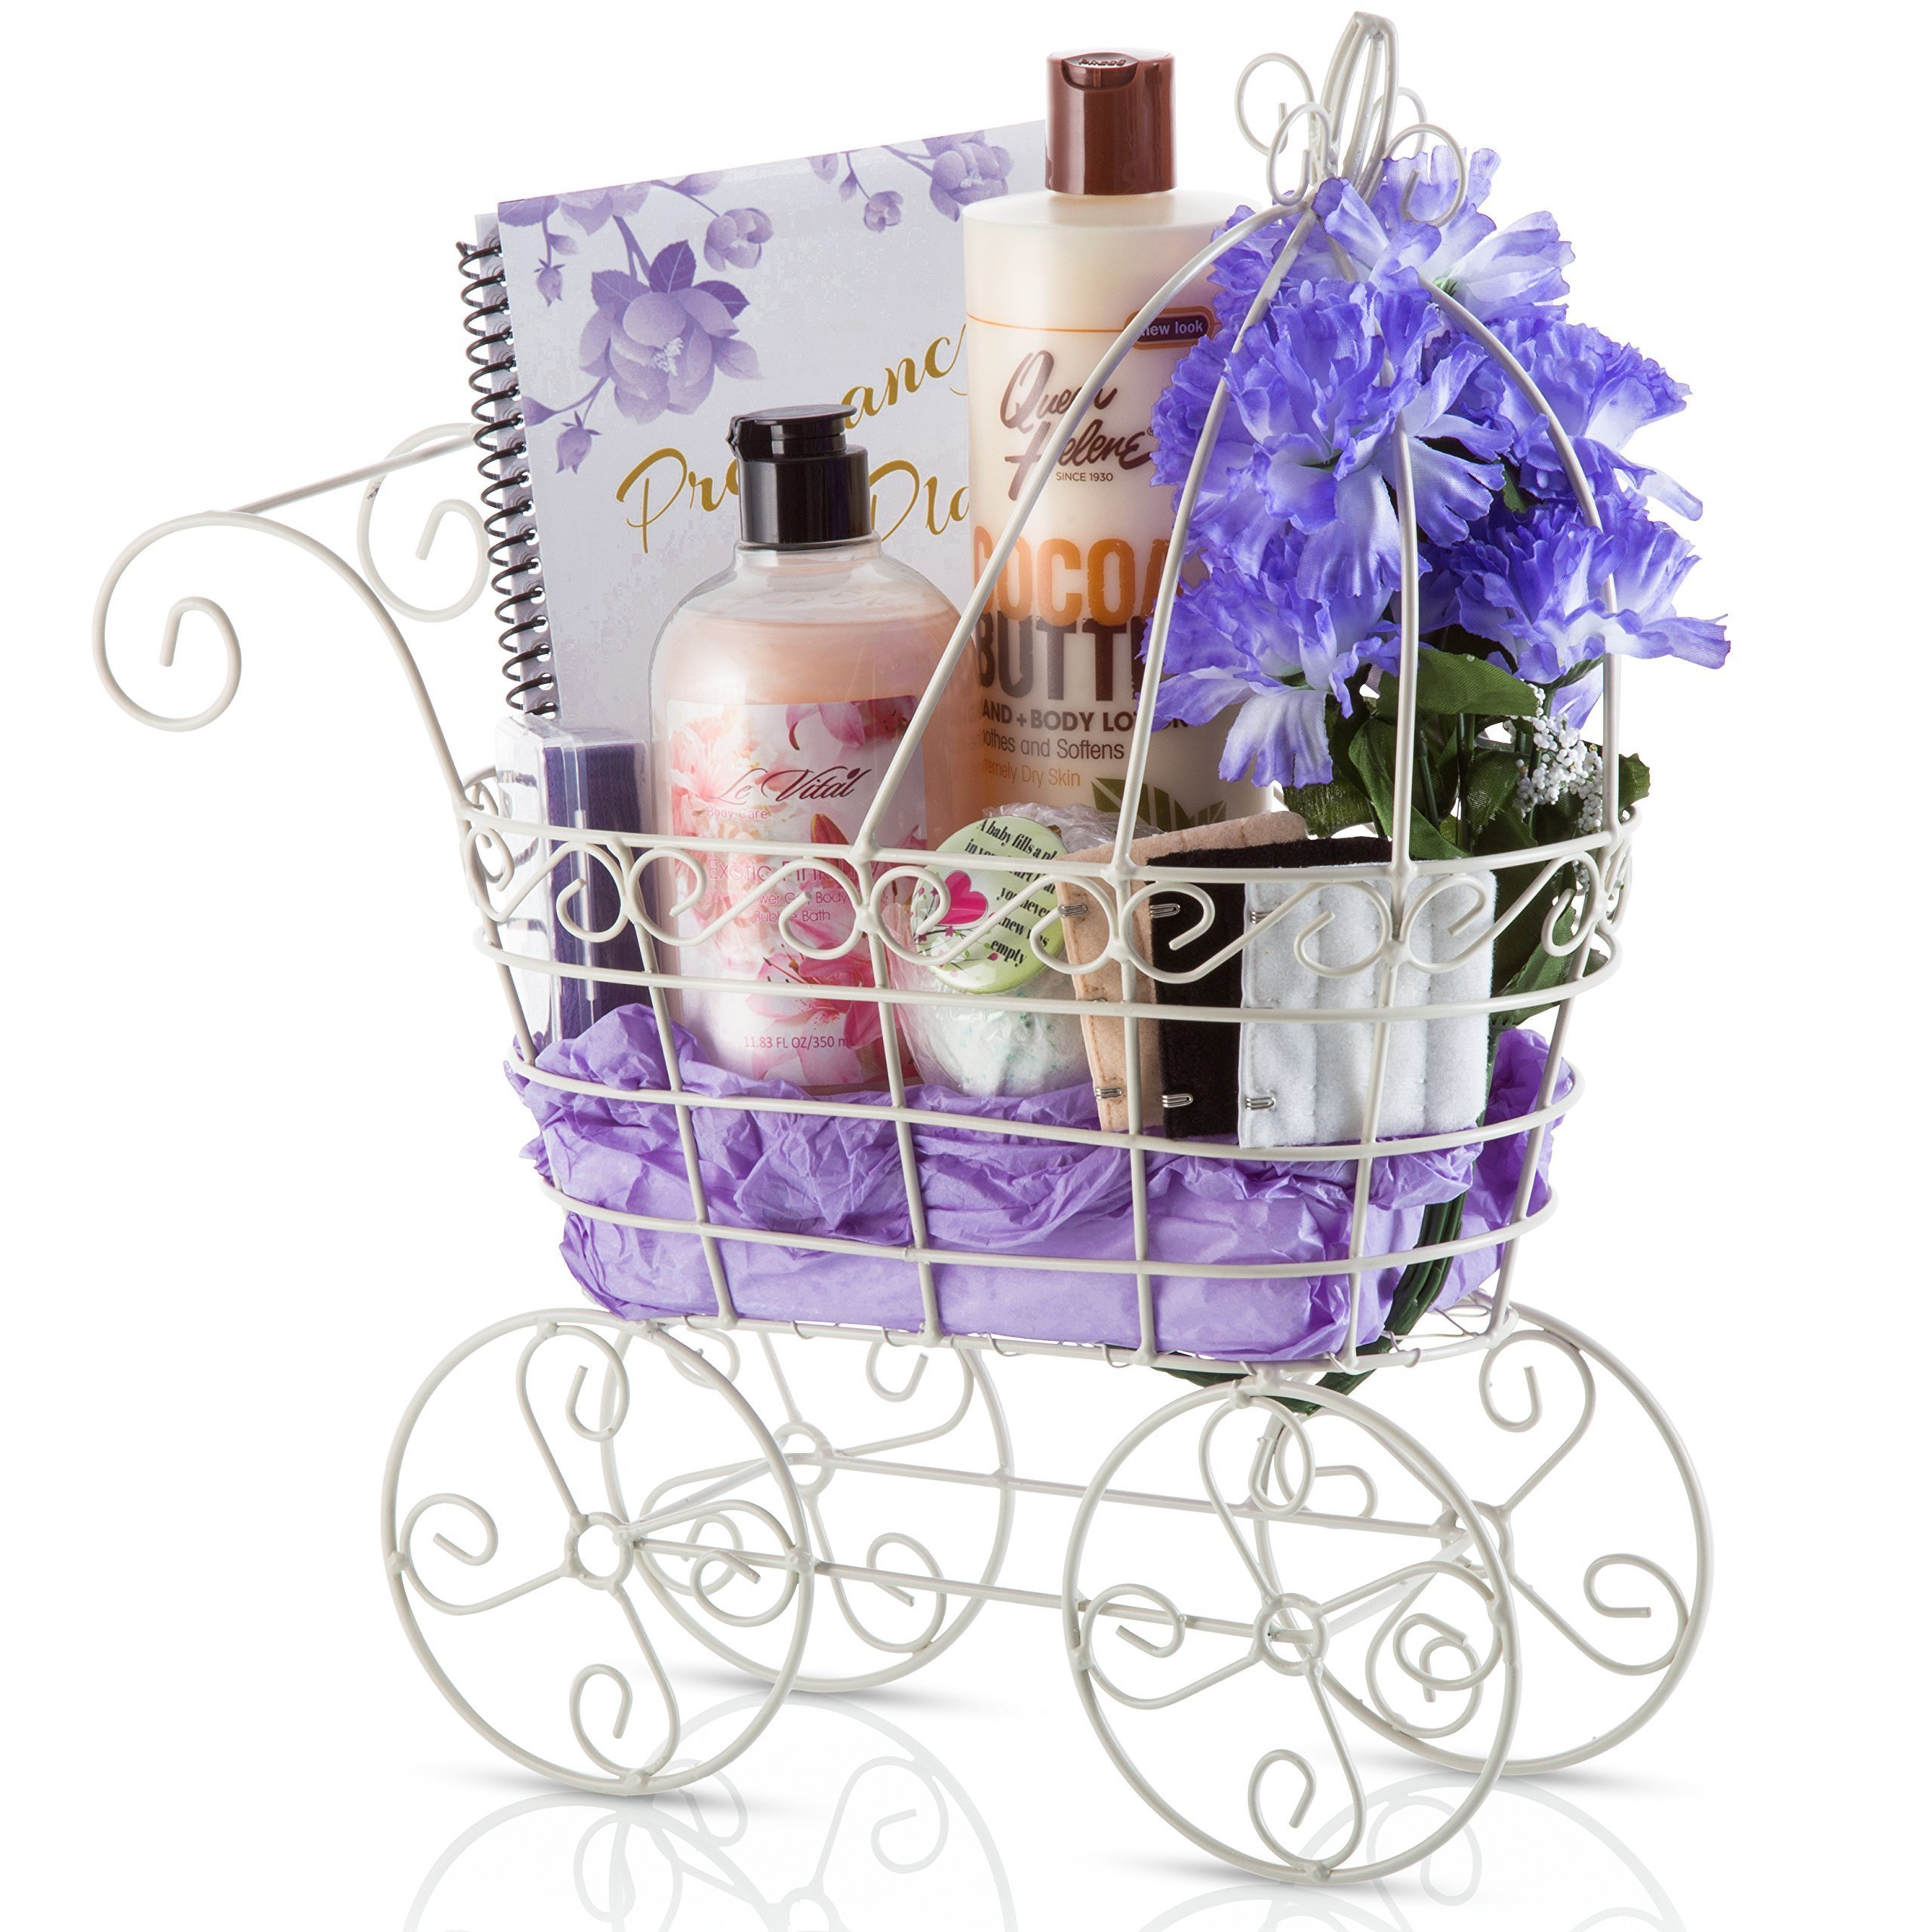 New Mama Pregnancy Maternity Gift Basket - Set of Cocoa Body Butter, Anti-Nausea Bracelets, Bra Extenders, Diary Book and Bath Bomb – Gorgeous Women's Gift Basket for Moms to Be